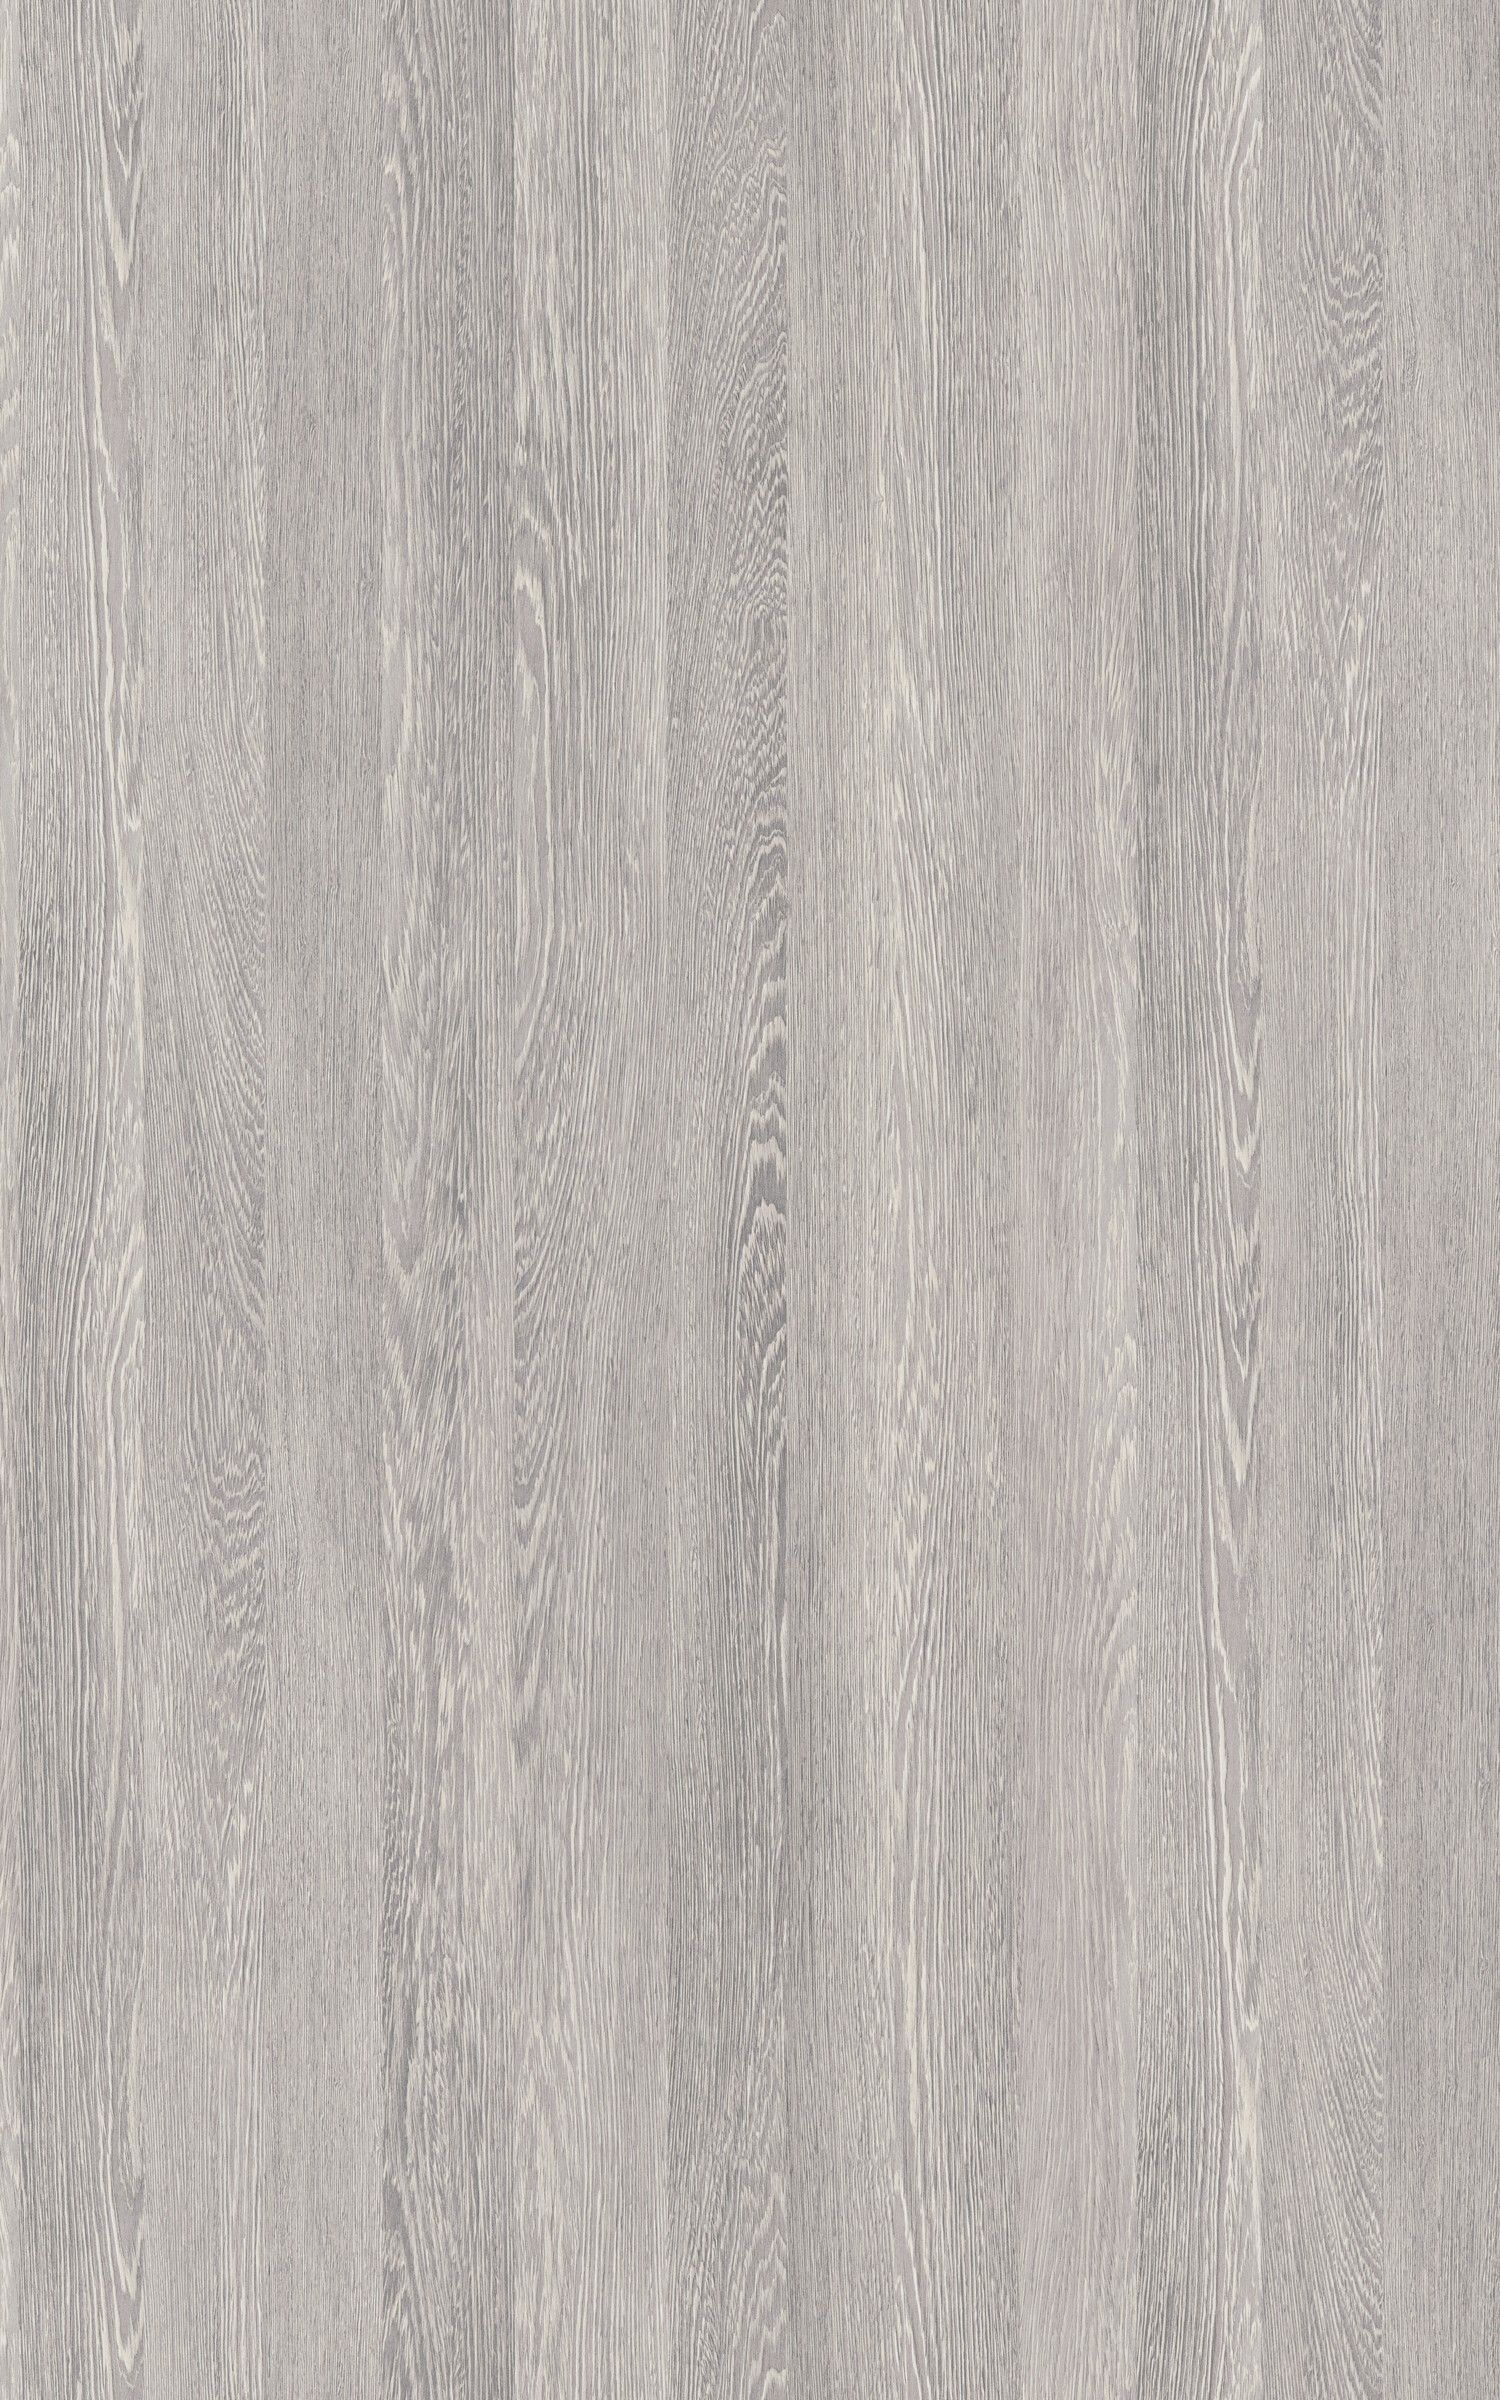 Wenge Blanc Ceruse Madera Textura Piso Laminado Textura